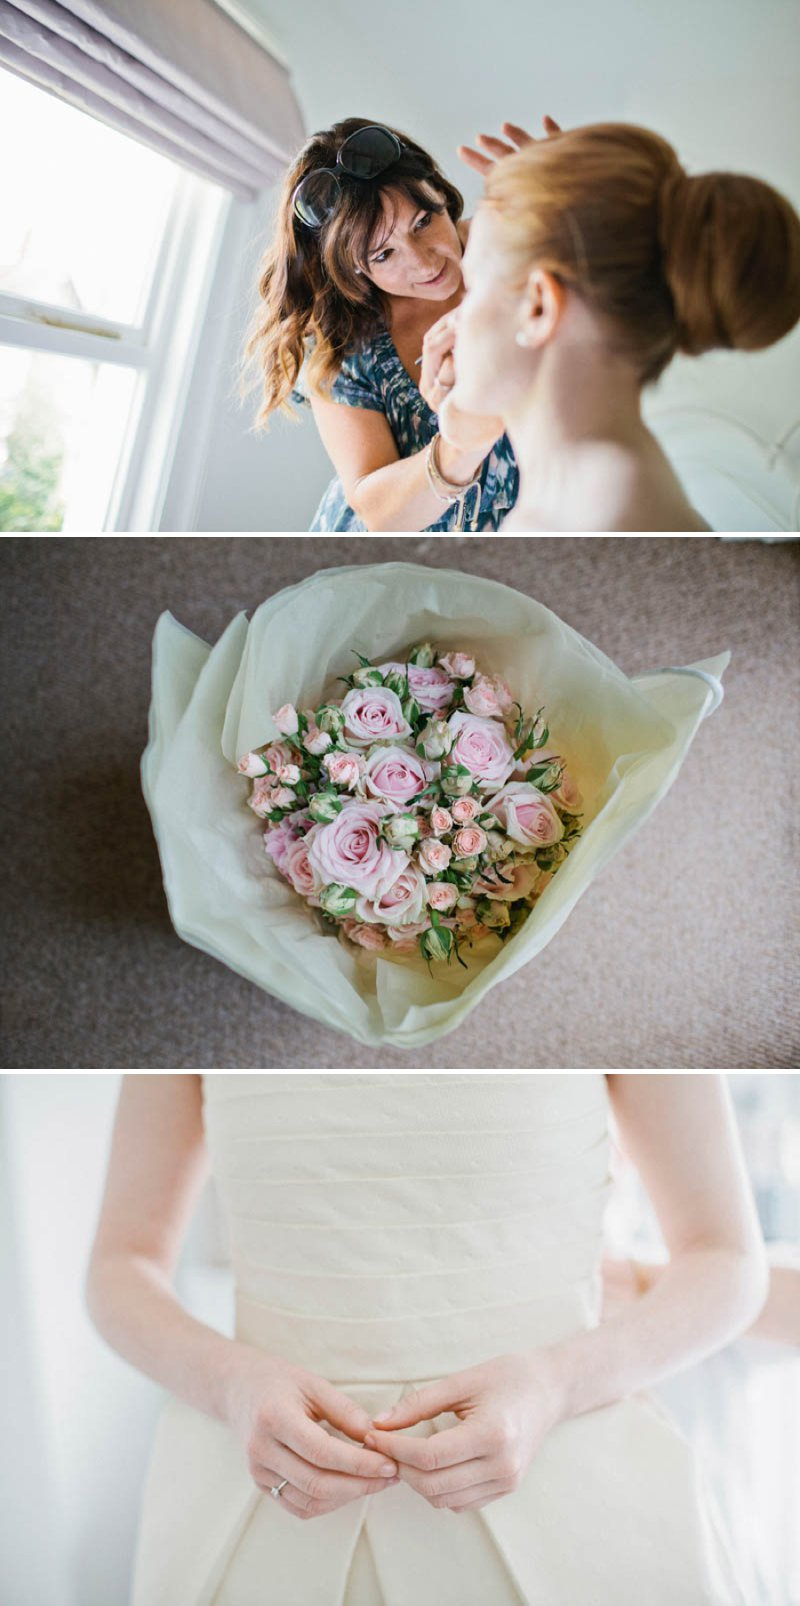 Ailsa Floral Design Wedding Florist Pink Roses And Hydrangea Bouquet